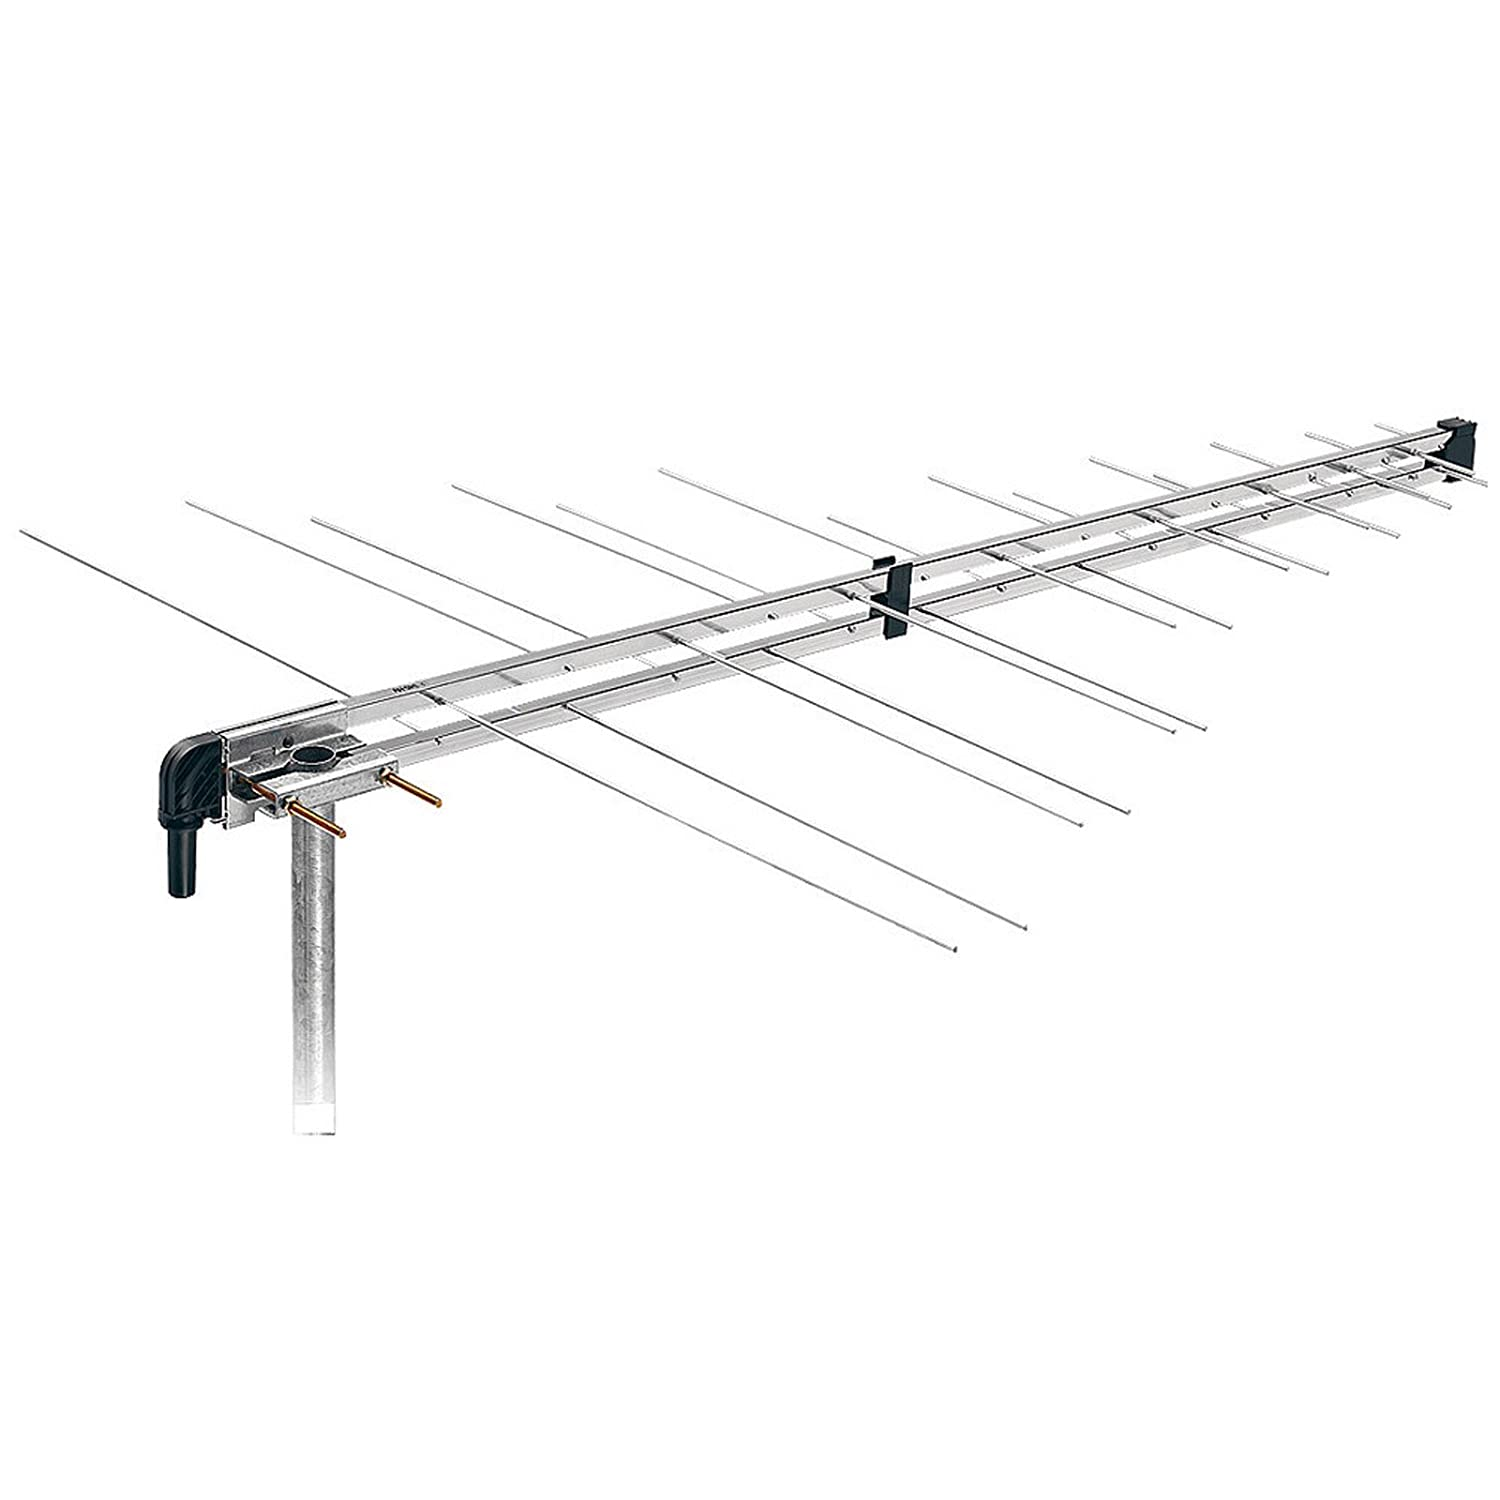 Possible to extend the yagi end of a VHF/UHF antenna? - AVS